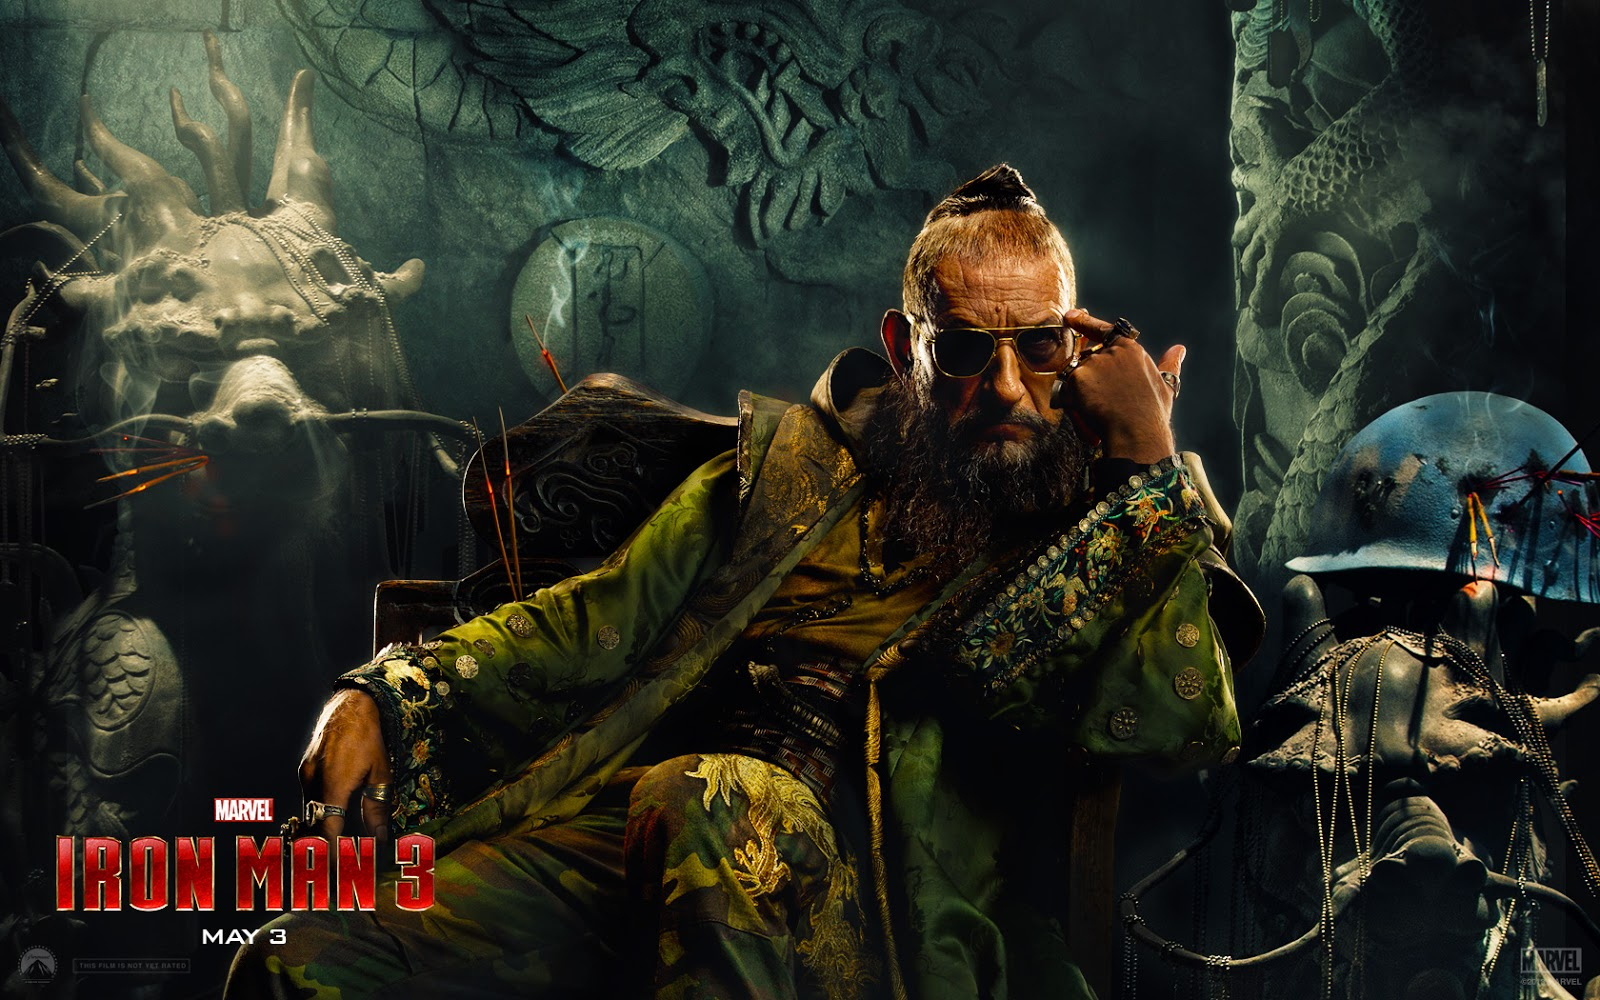 http://www.agentsofguard.com/wp-content/uploads/2013/10/Ben-Kingsley-The-Mandarin-Iron-Man-3-HD-Wallpaper.jpg